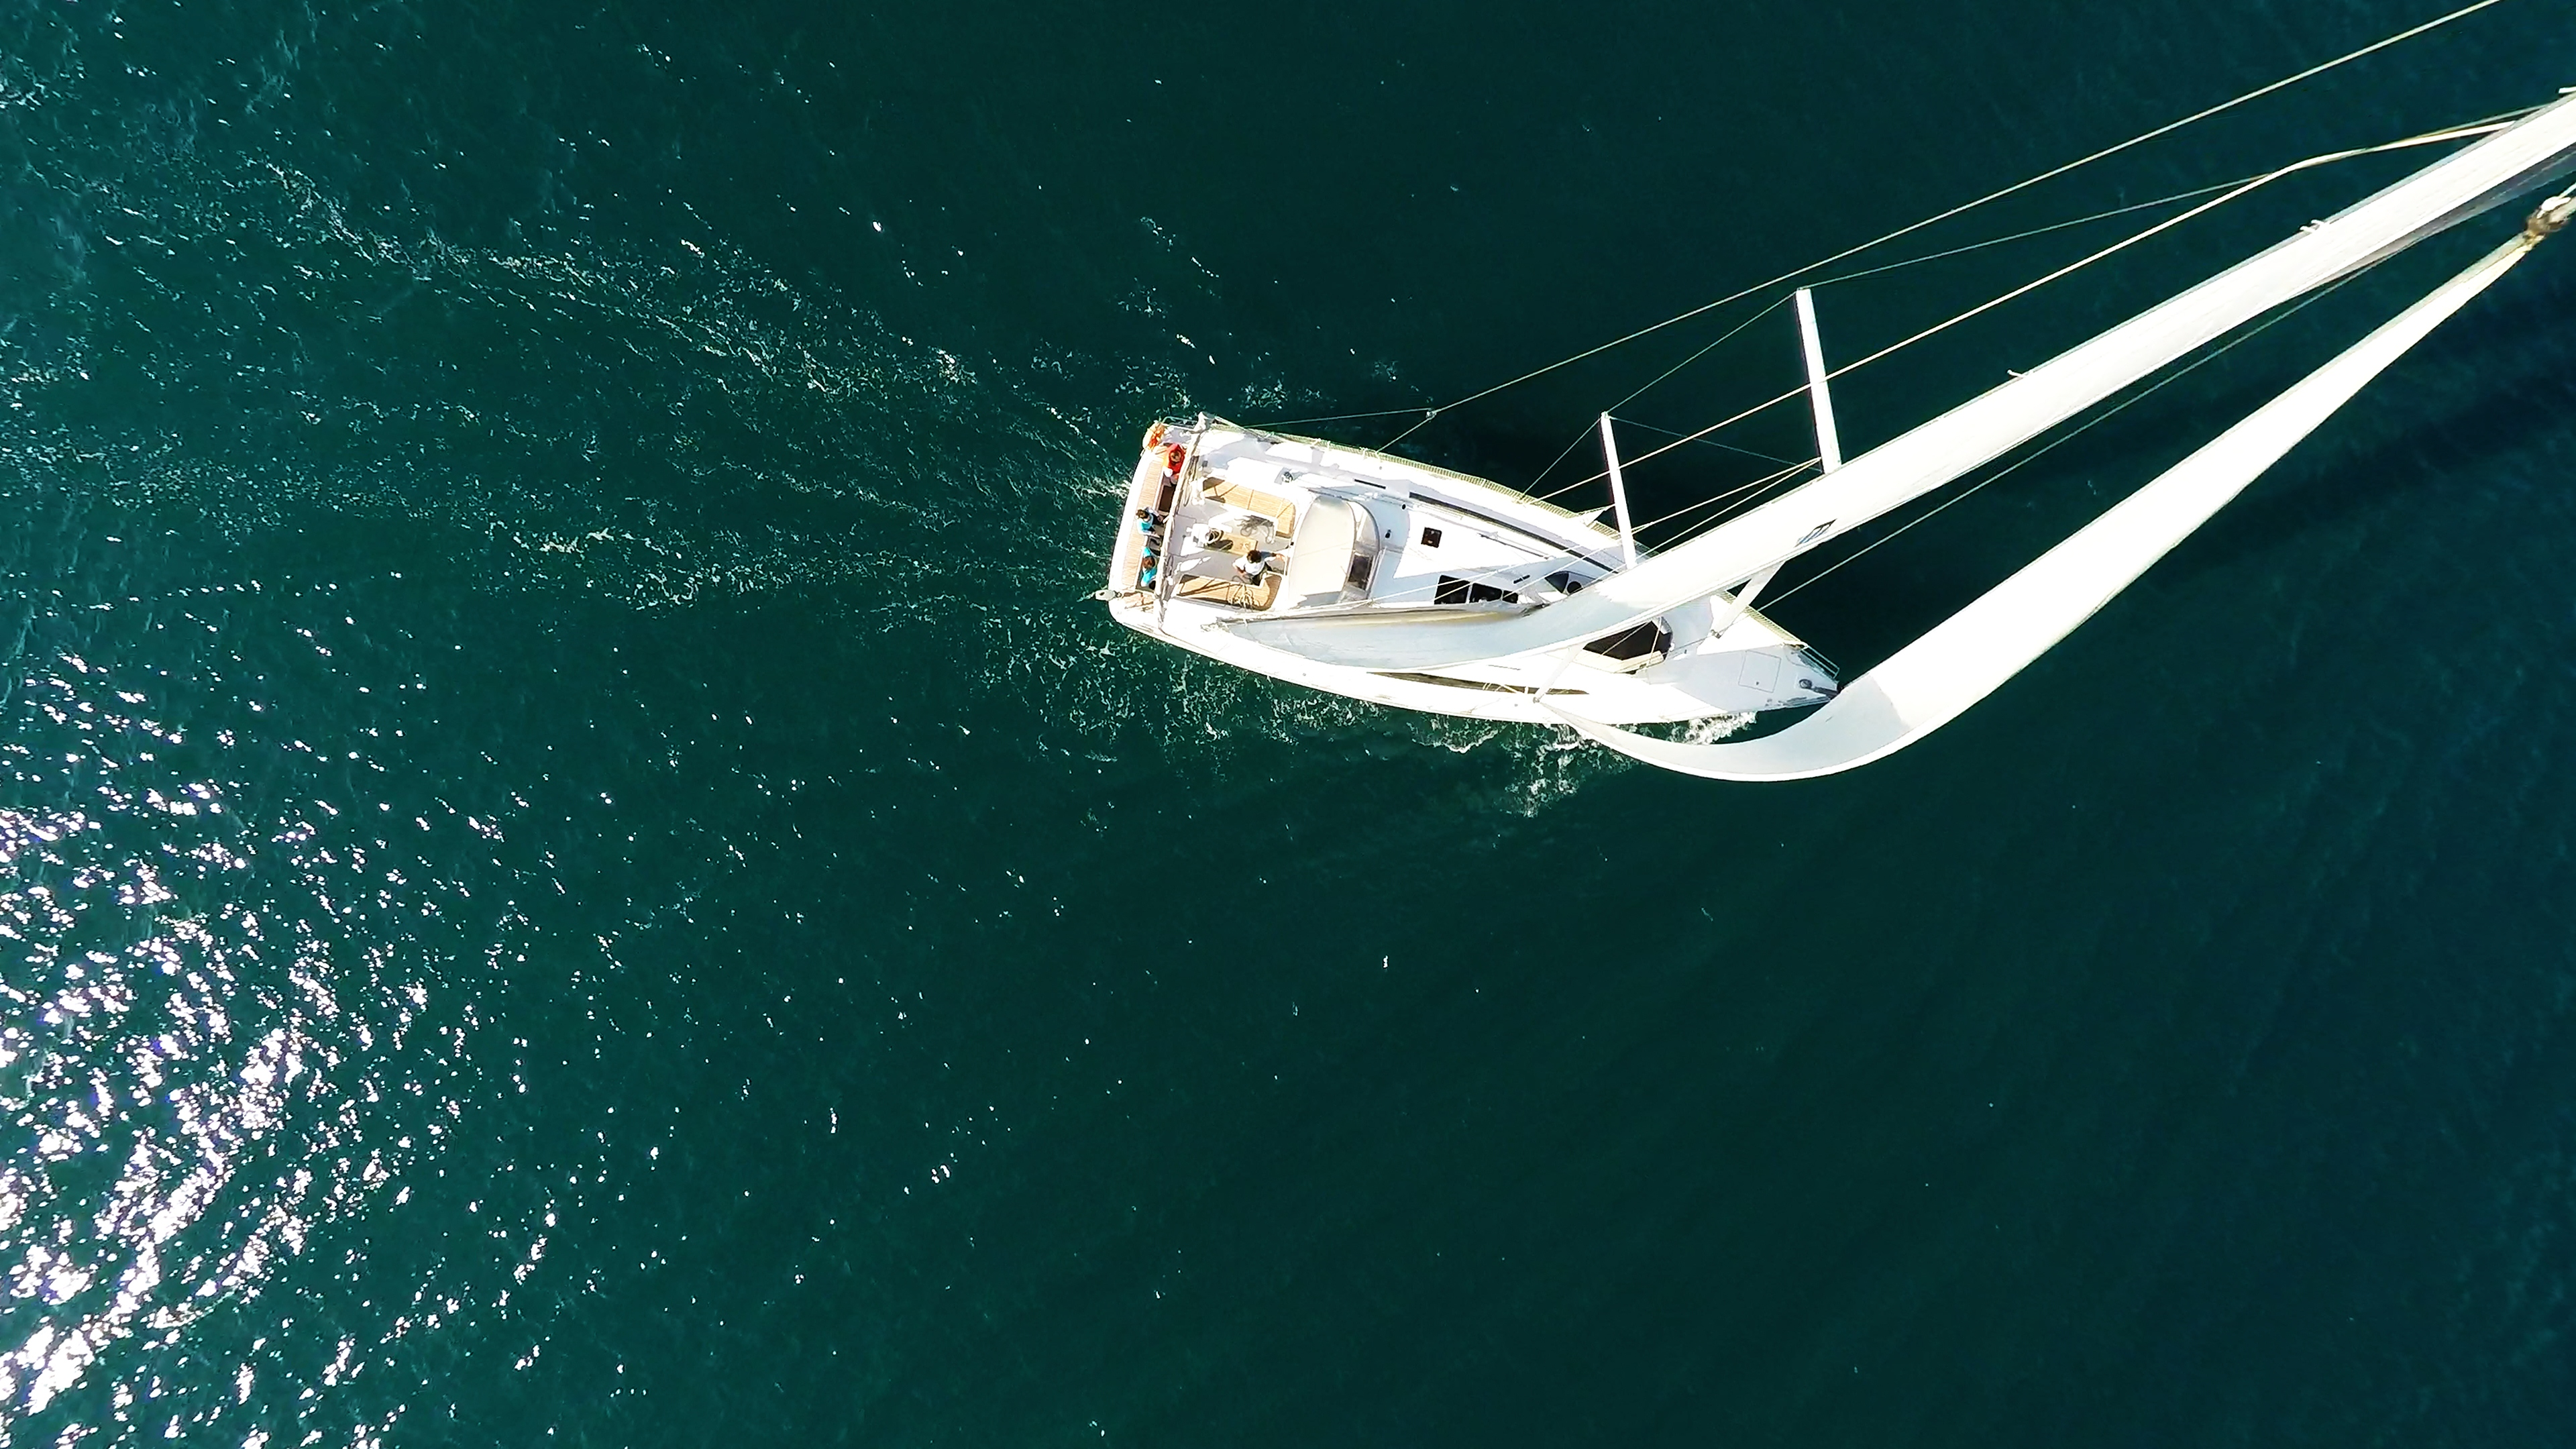 sailing yacht from sky sails